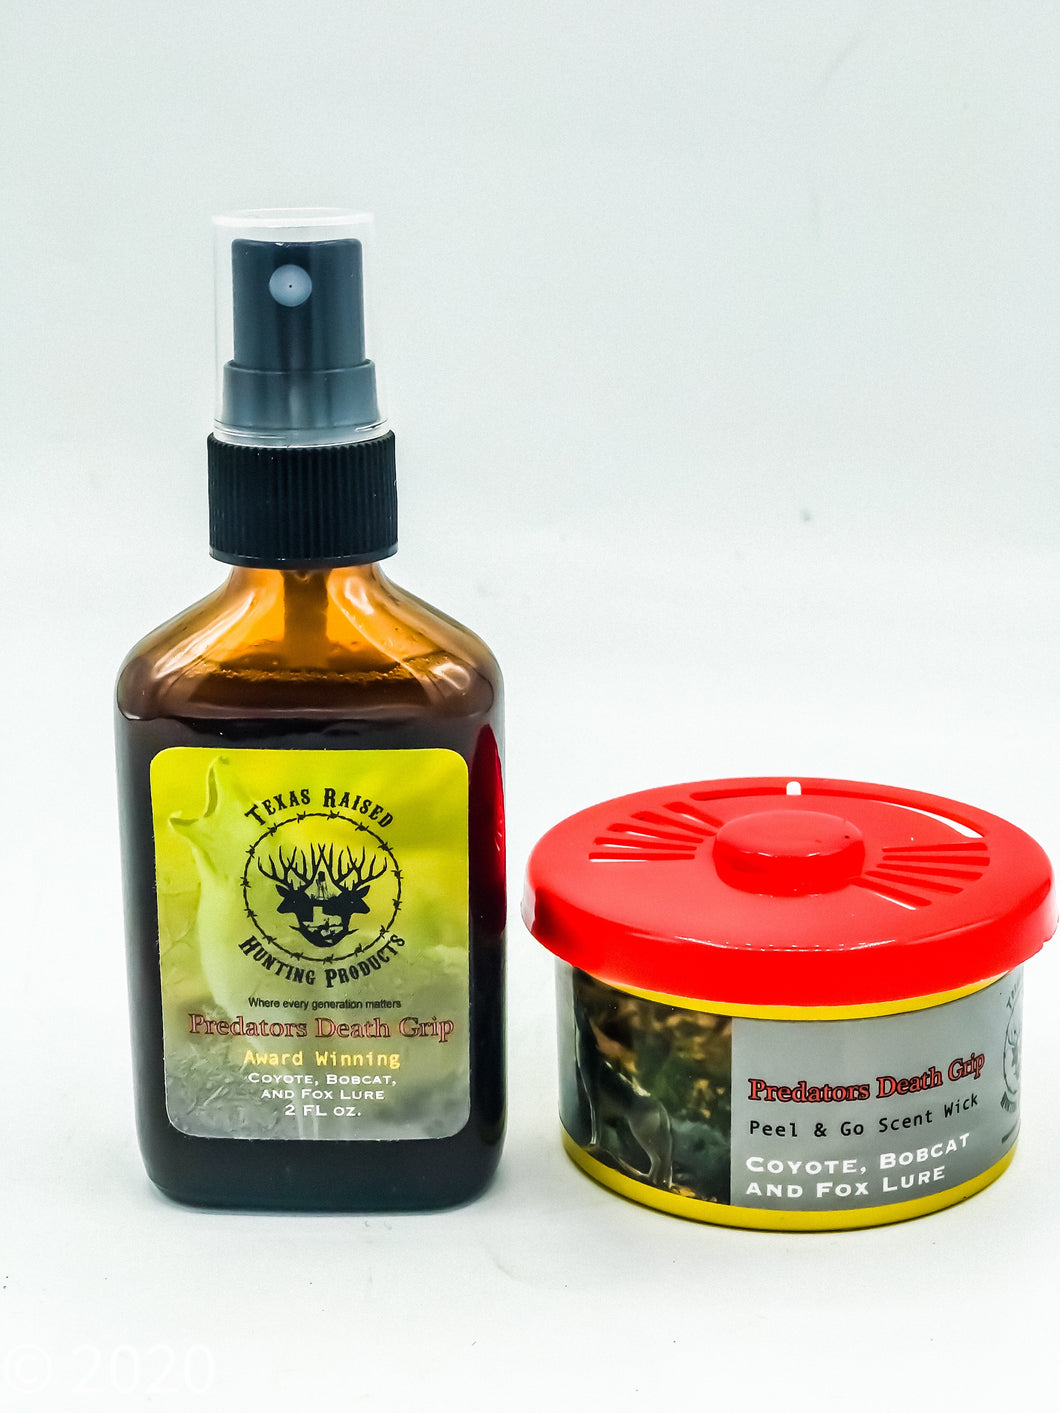 Predators Death Grip With (Wick Refresher) Buy 1 Get 1 FREE 12 oz. Bottle Of (Formula Patented Scent Eliminator) Customer must add SCENT GUARDIAN + PLUS OR SCENT GUARDIAN NO SCENT TO CART TO REDEEM OFFER!!! - Texas Raised Hunting Products